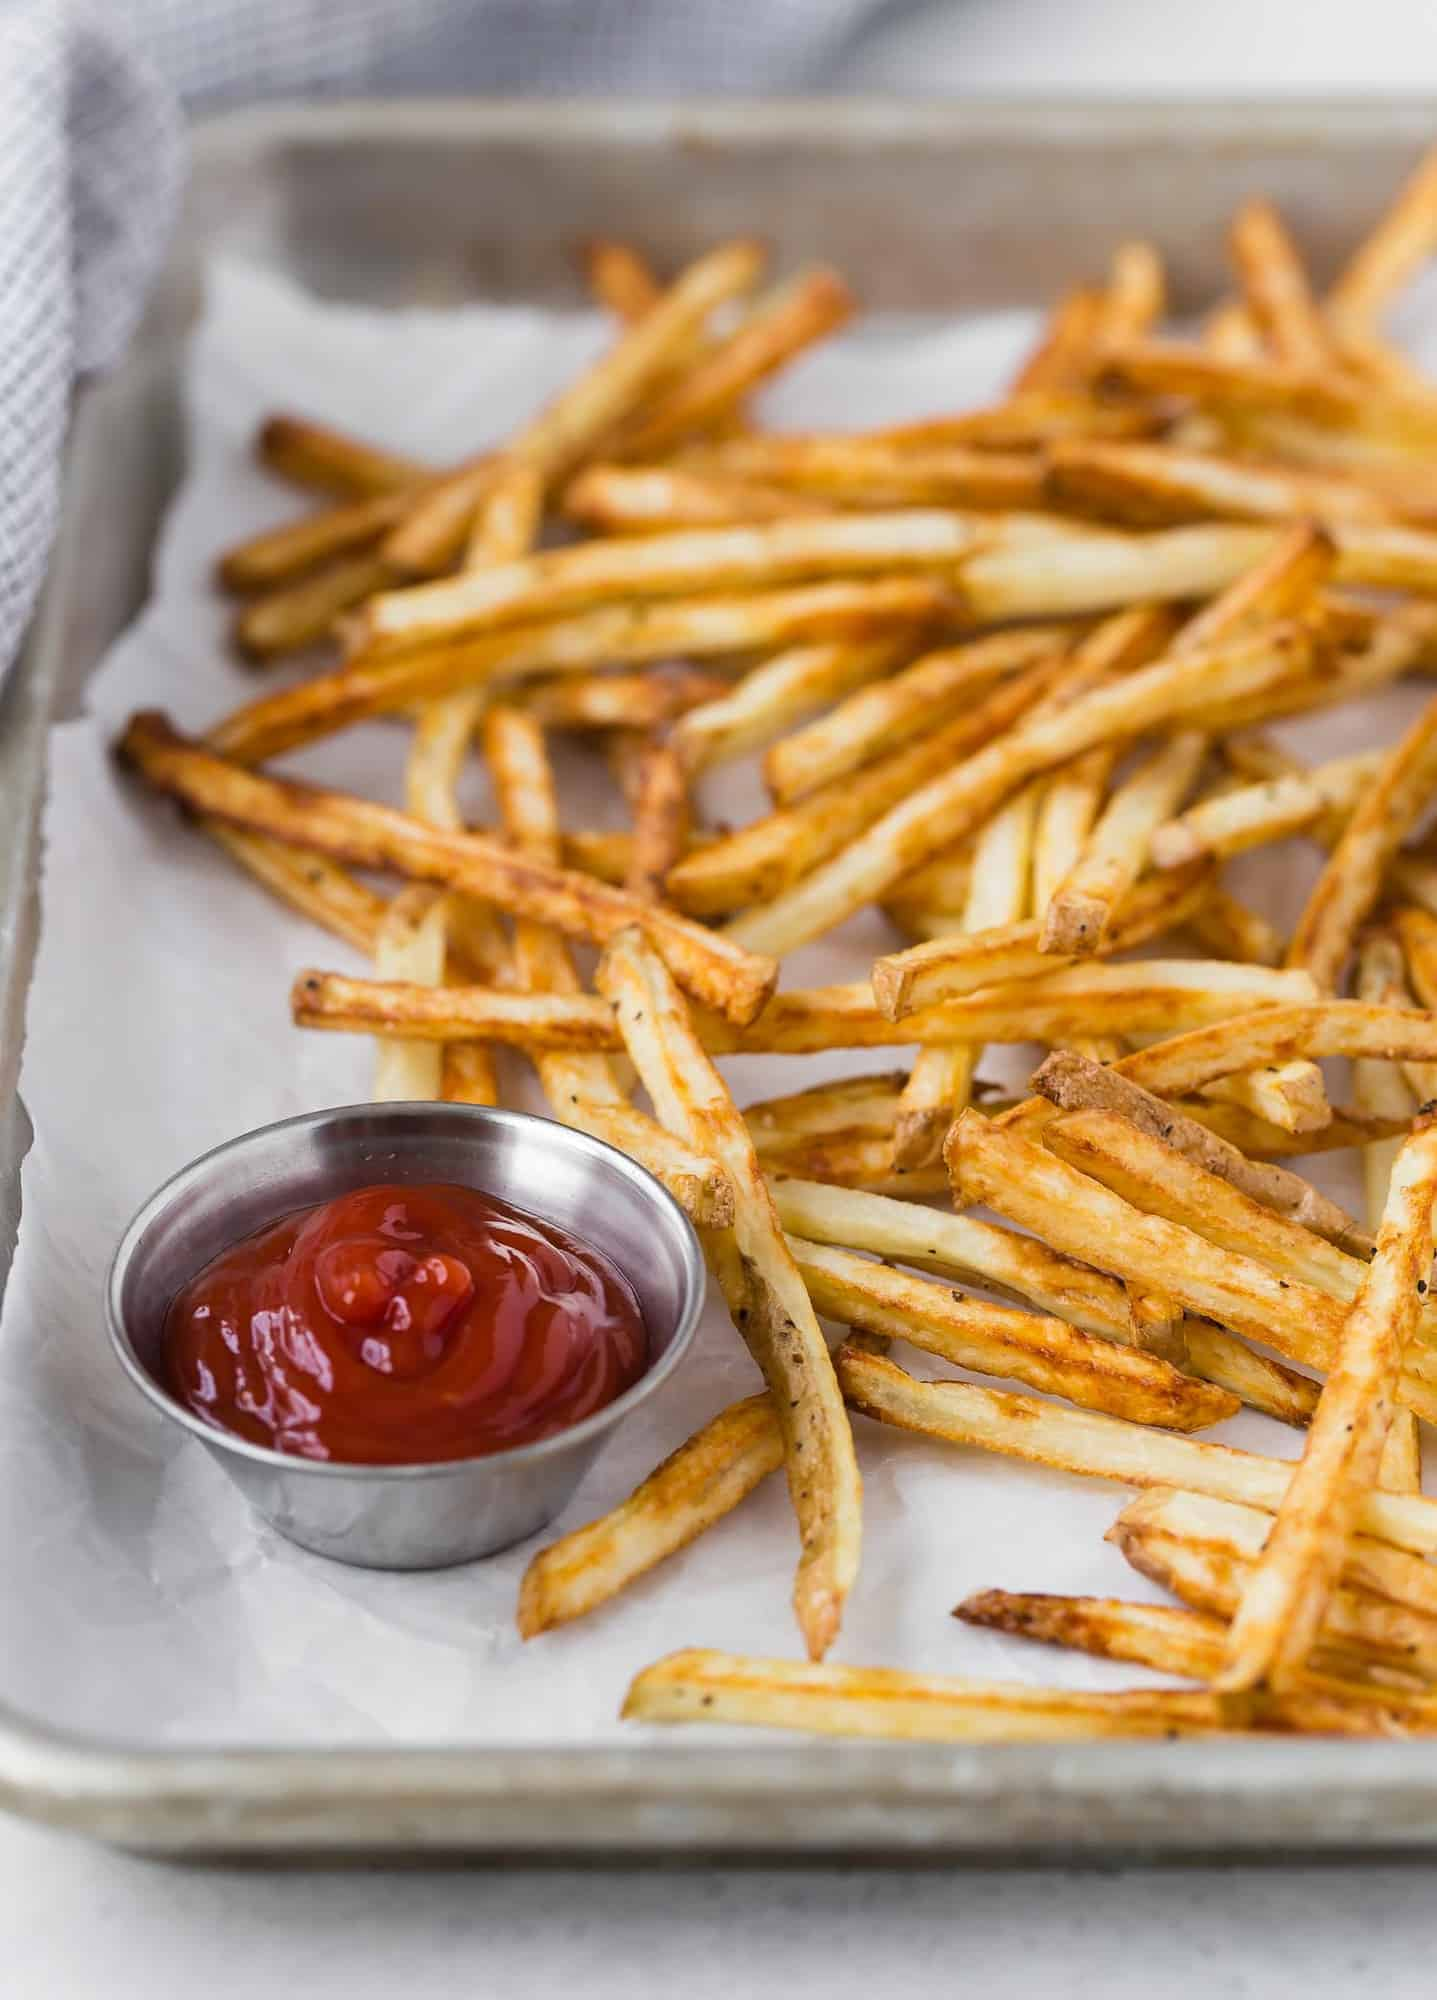 Crispy french fries made in an air fryer, on a metal tray with a cup of ketchup also pictured.